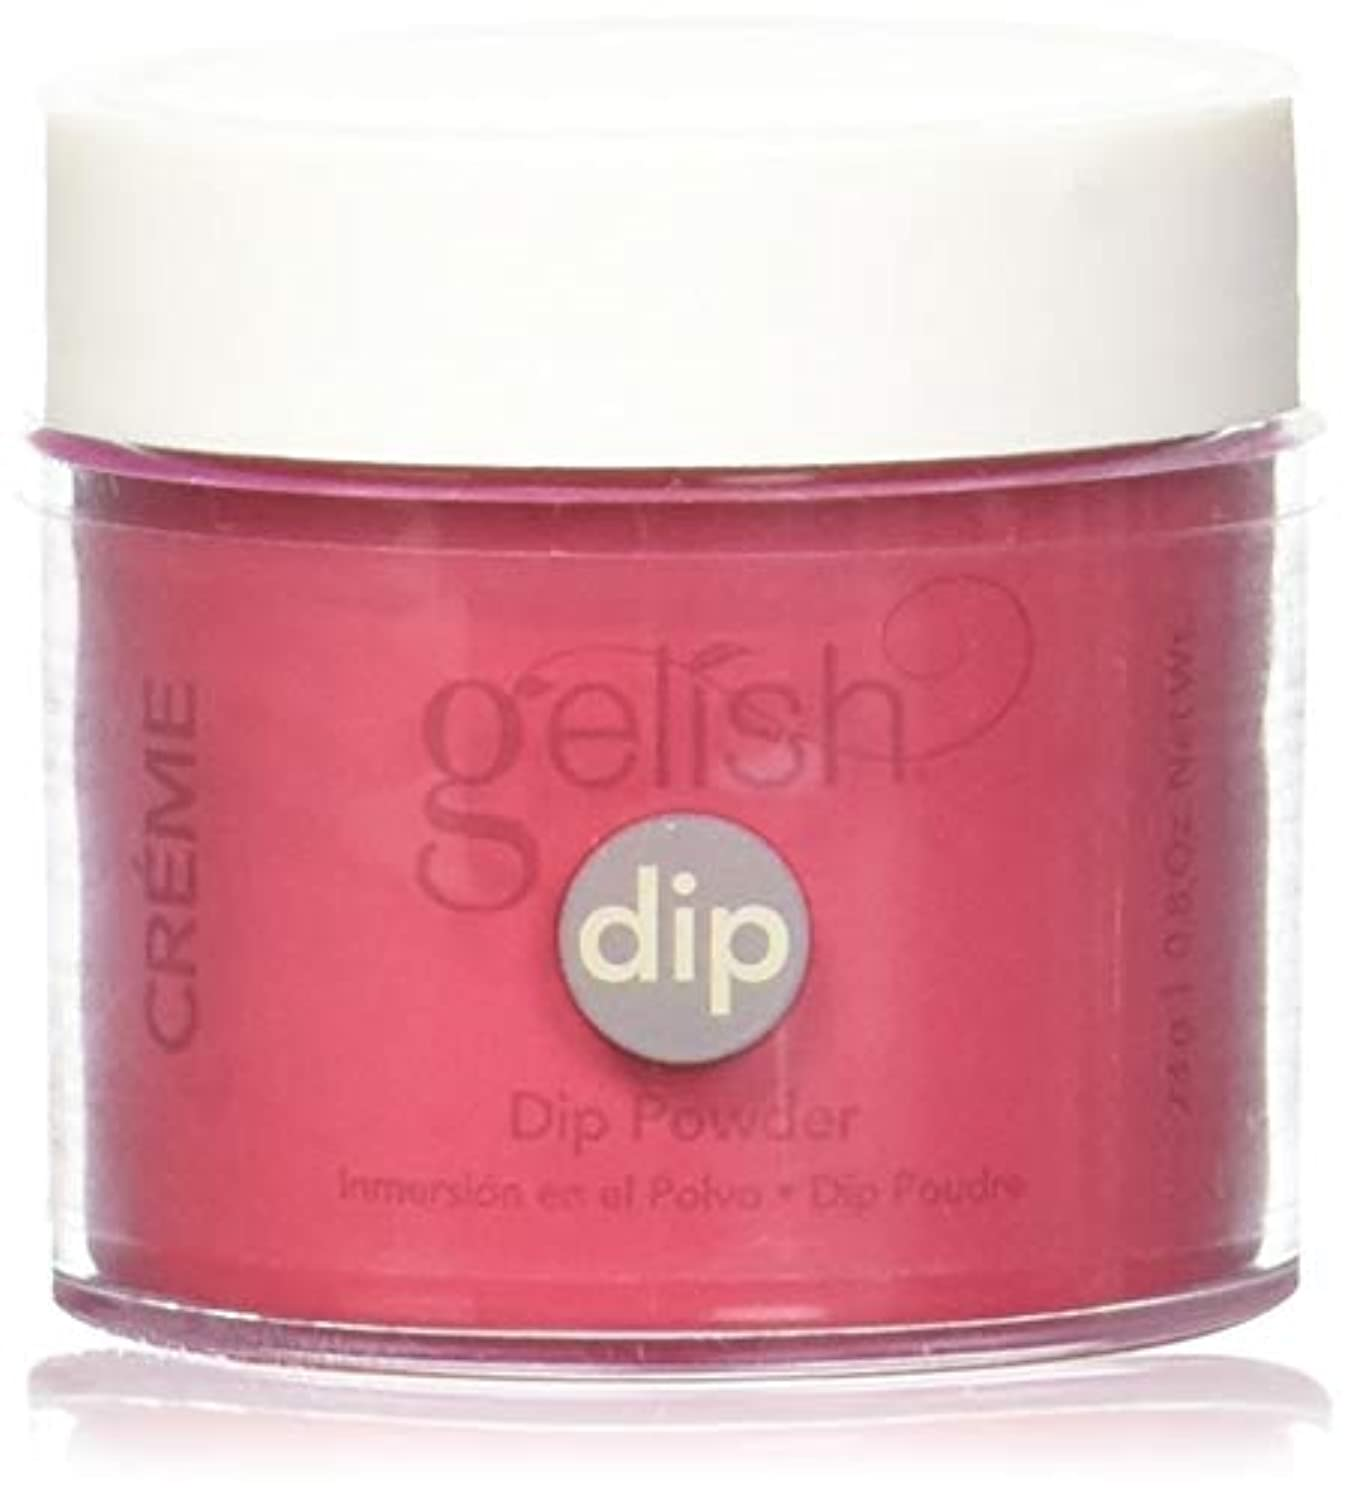 羽価値のないマスクHarmony Gelish - Acrylic Dip Powder - Hot Rod Red - 23g / 0.8oz